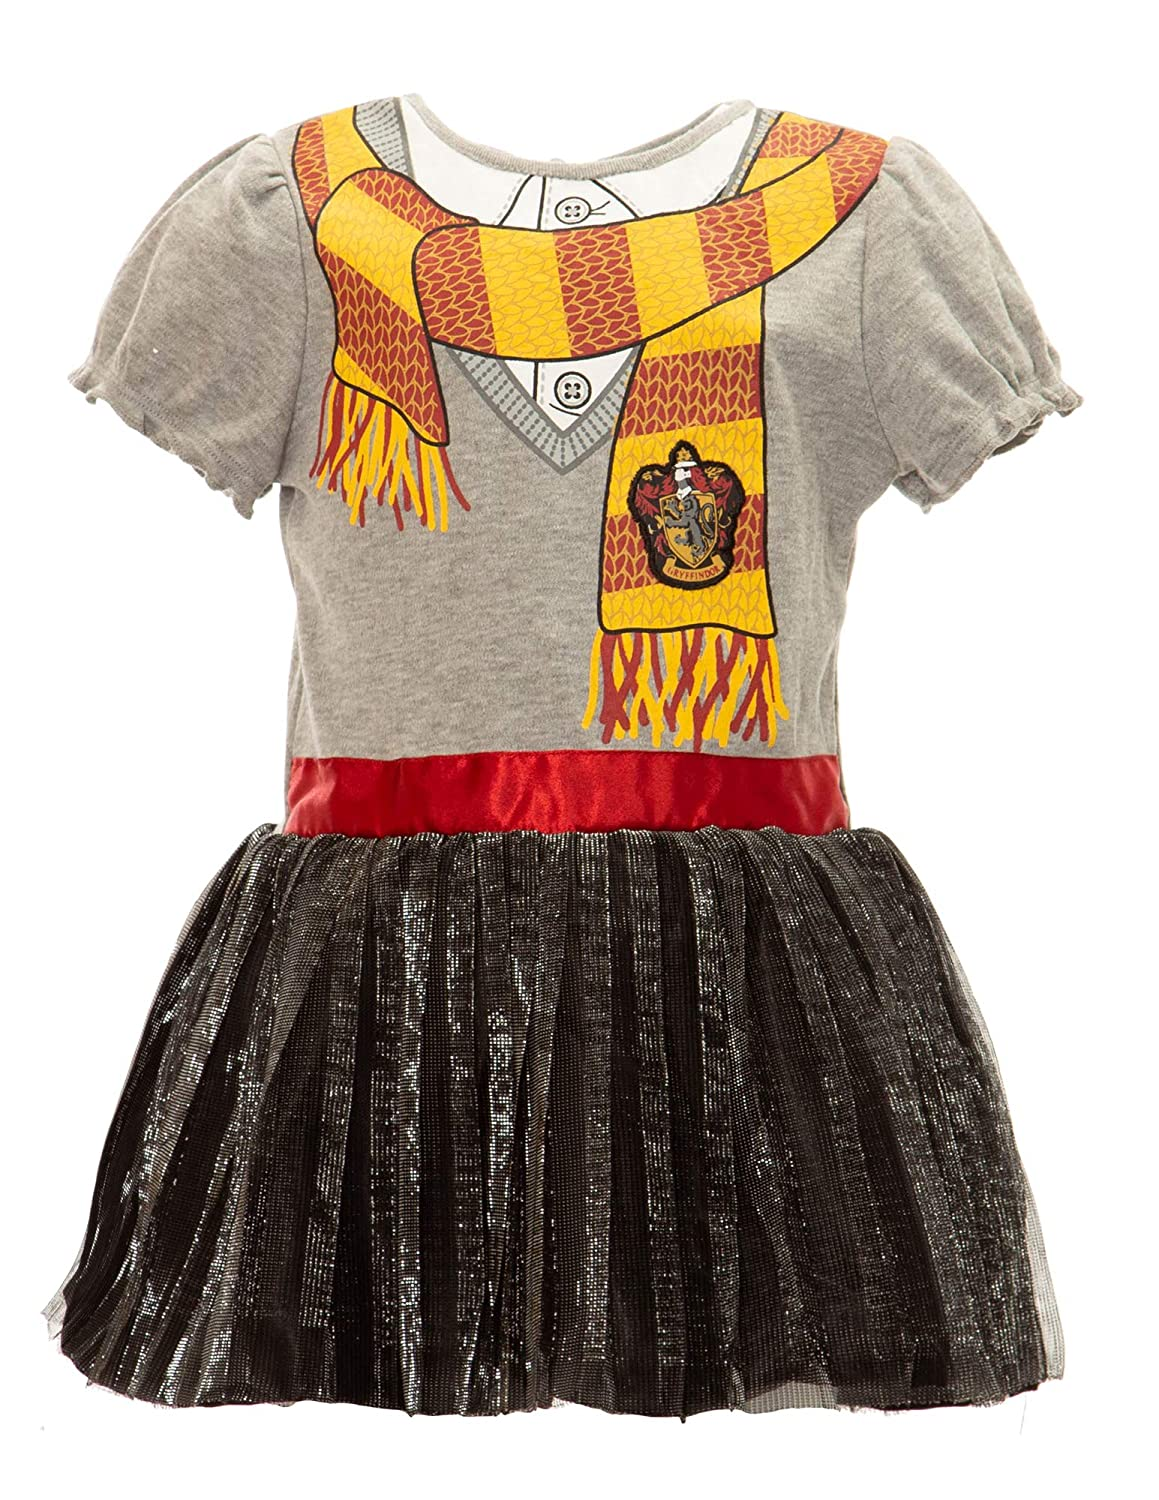 c48d16d3aade Amazon.com  Warner Bros. Harry Potter Girls  Hooded Costume Ruffle Dress  with Cape  Clothing